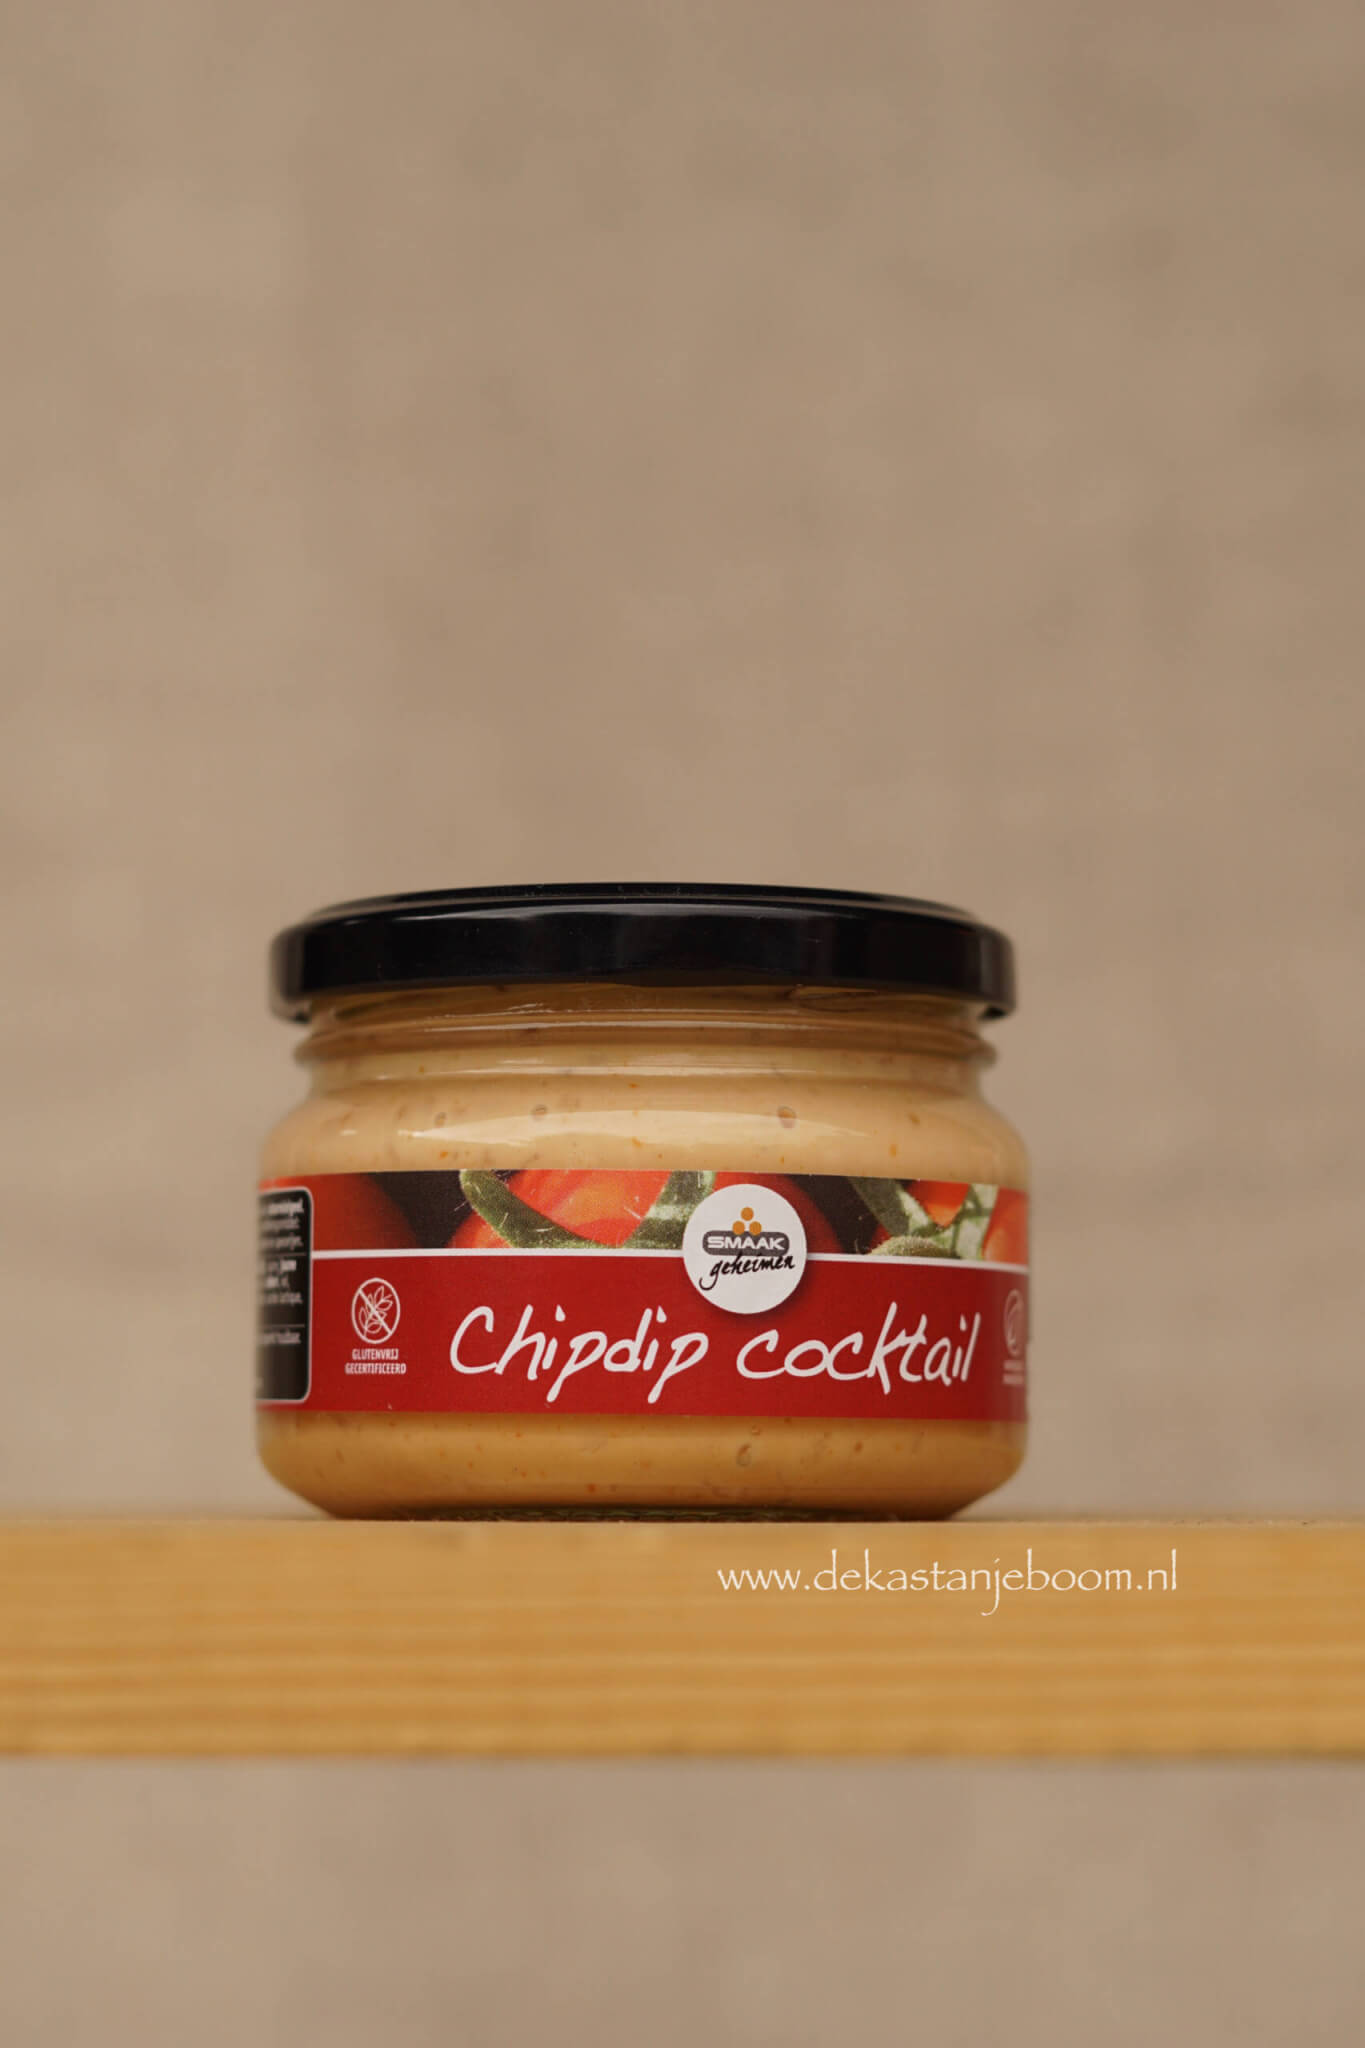 Chipdip coctail